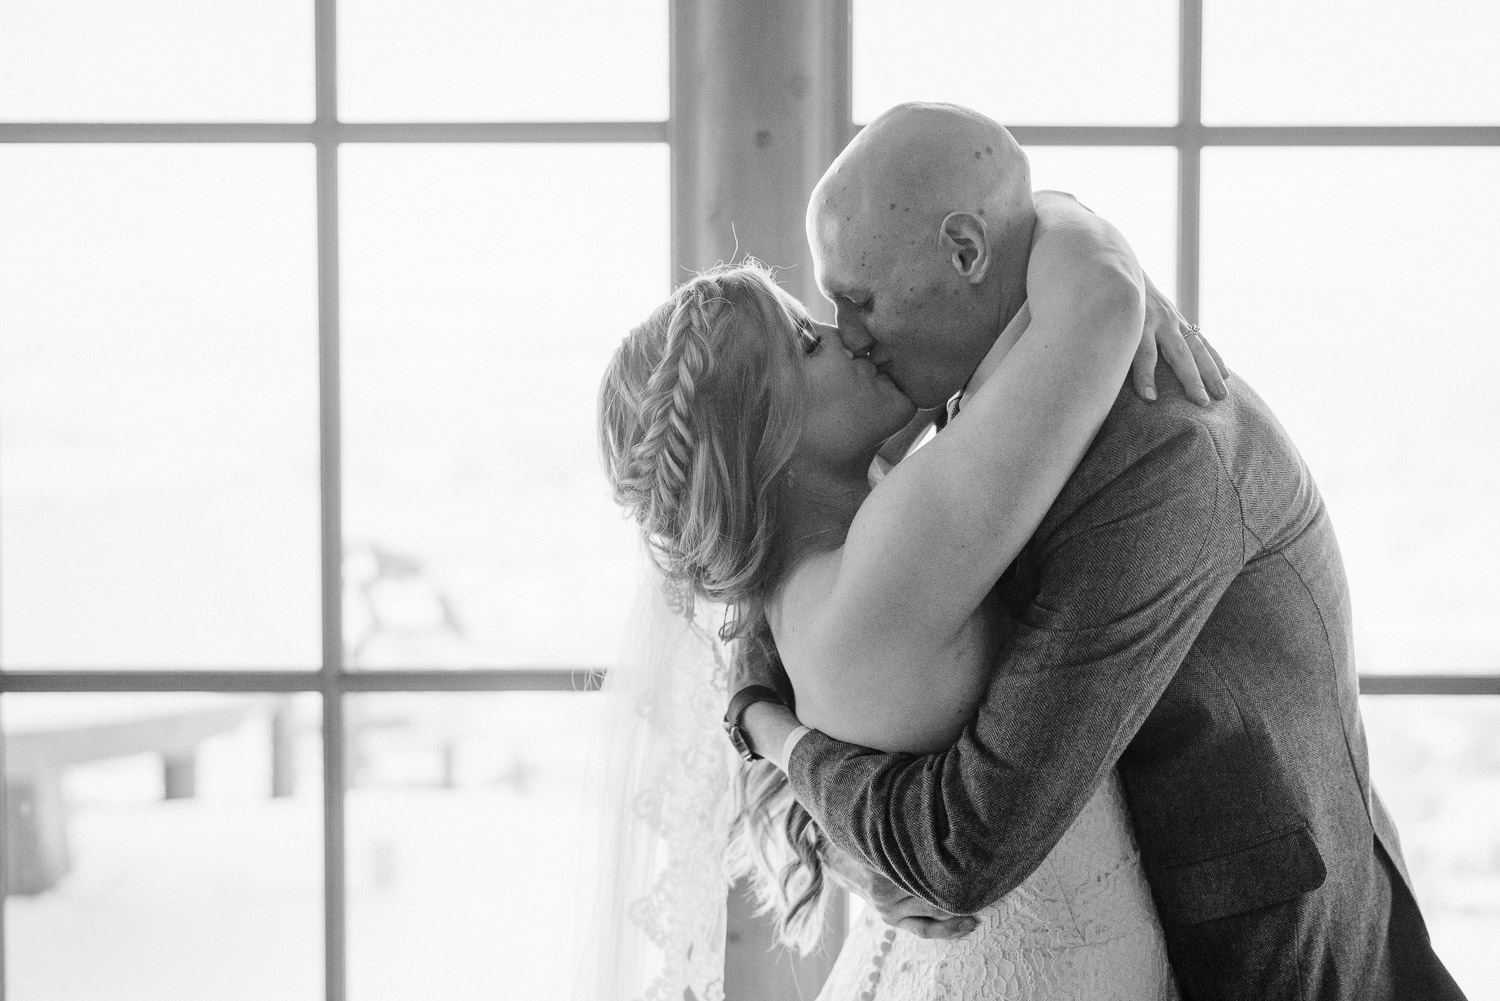 bride and groom embracing and kissing snowbasin resort wedding